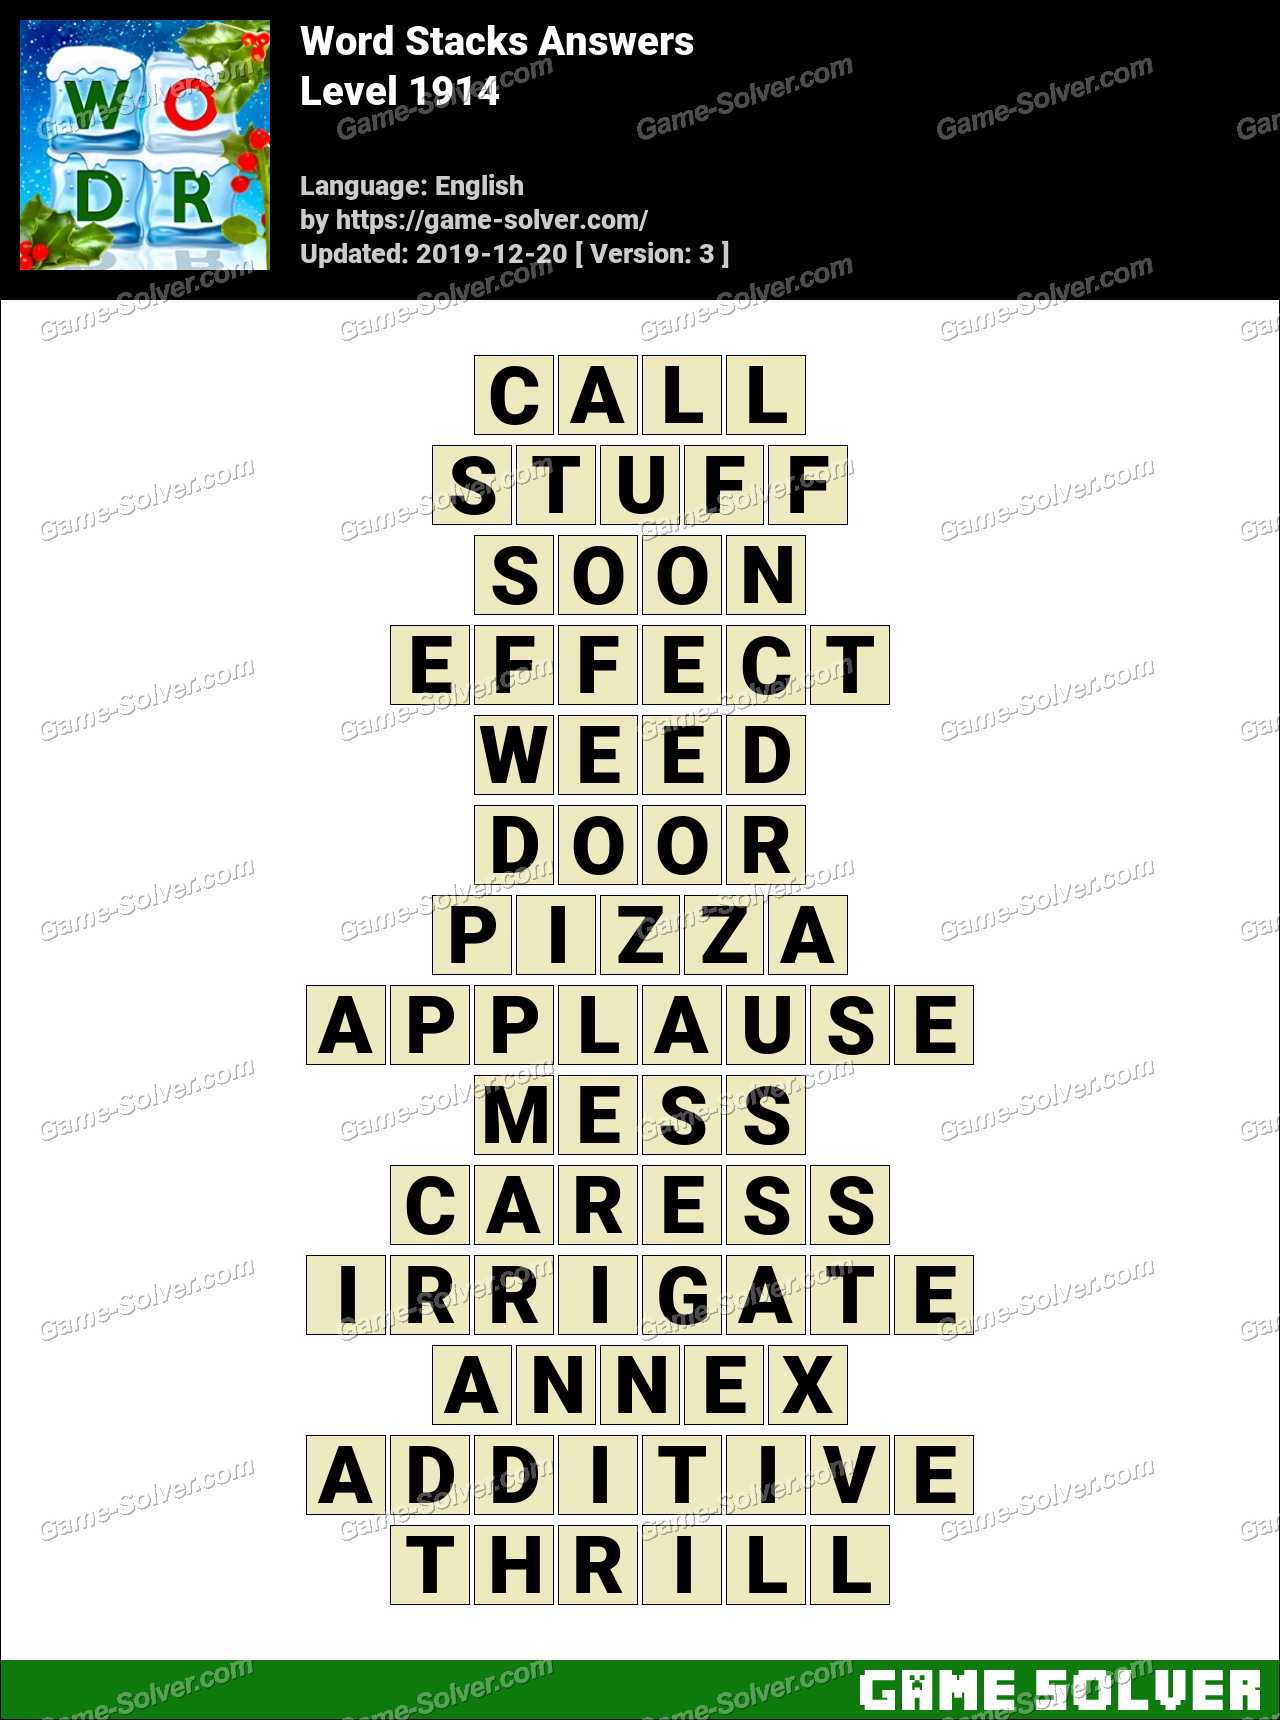 Word Stacks Level 1914 Answers